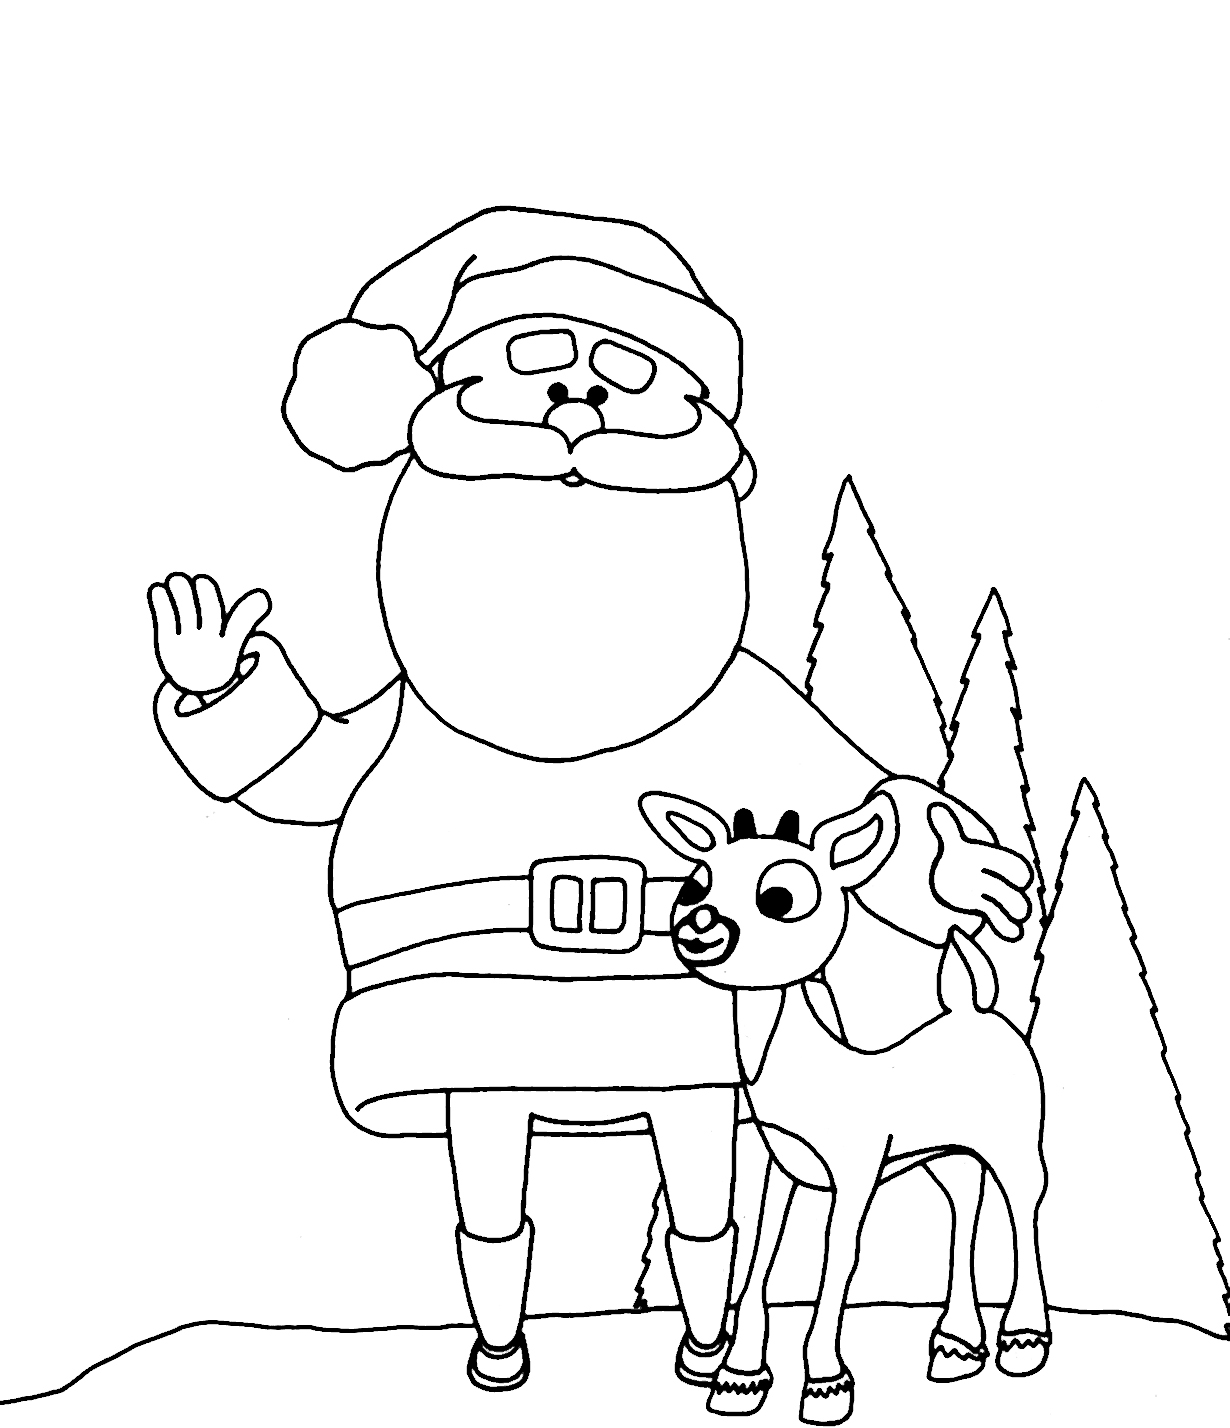 Kids Christmas Santa Claus Coloring Page Sheets With Free Printable Pages For